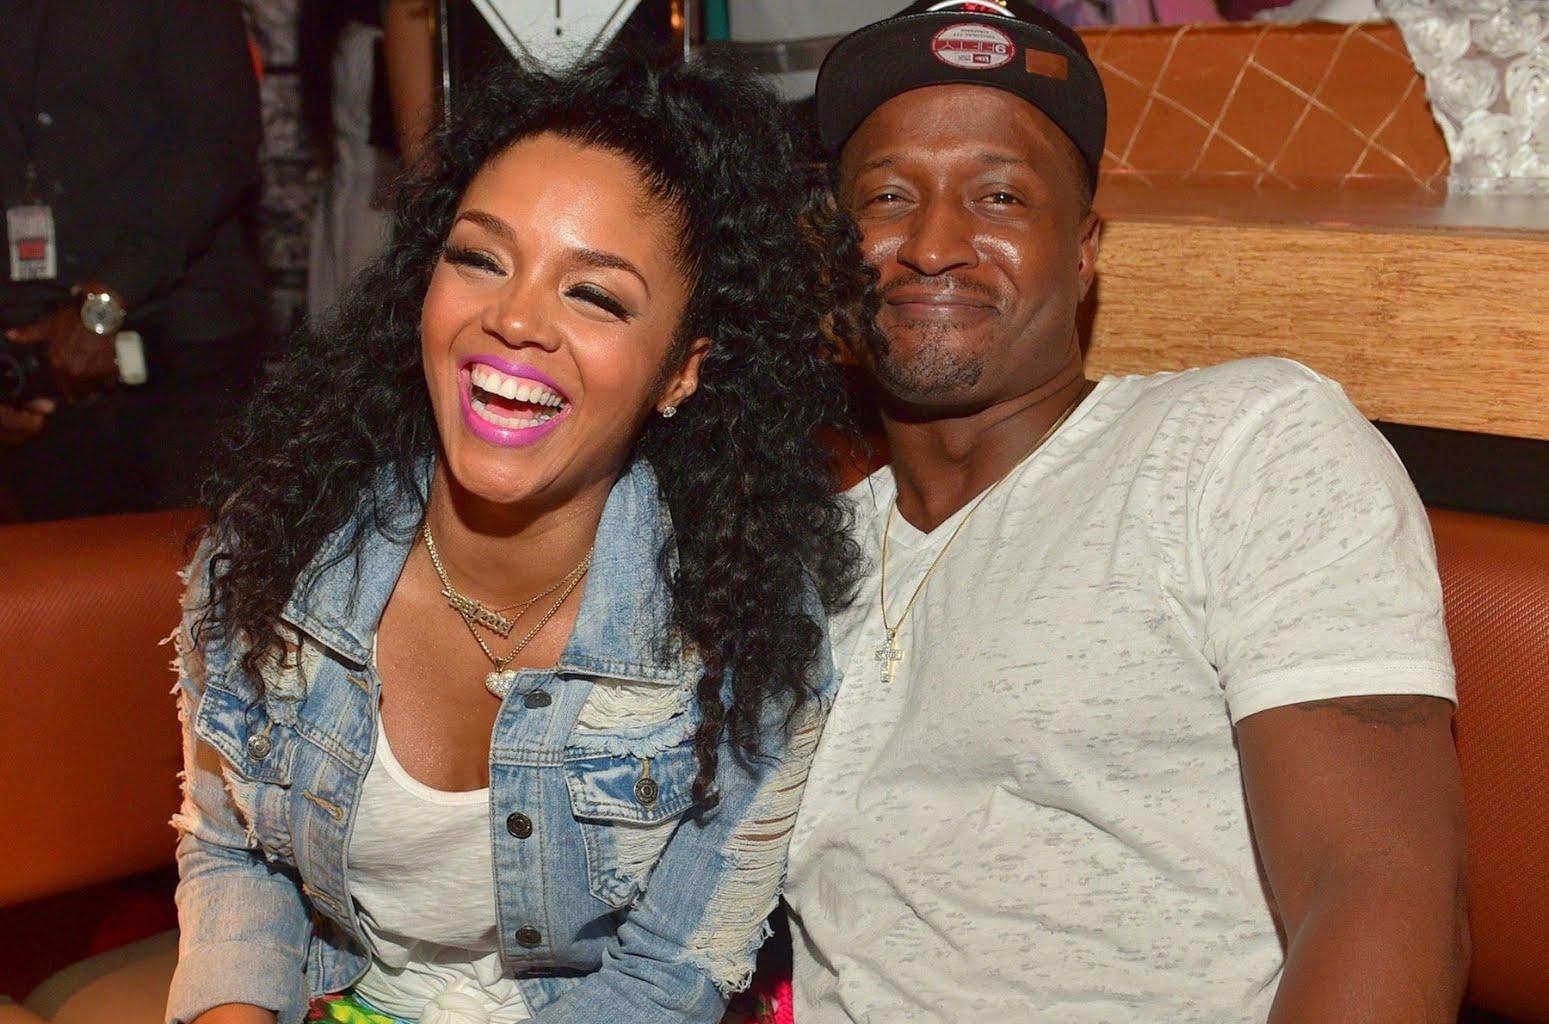 Rasheeda Frost And Kirk Look Amazing In This Video - Check Out The Power Couple